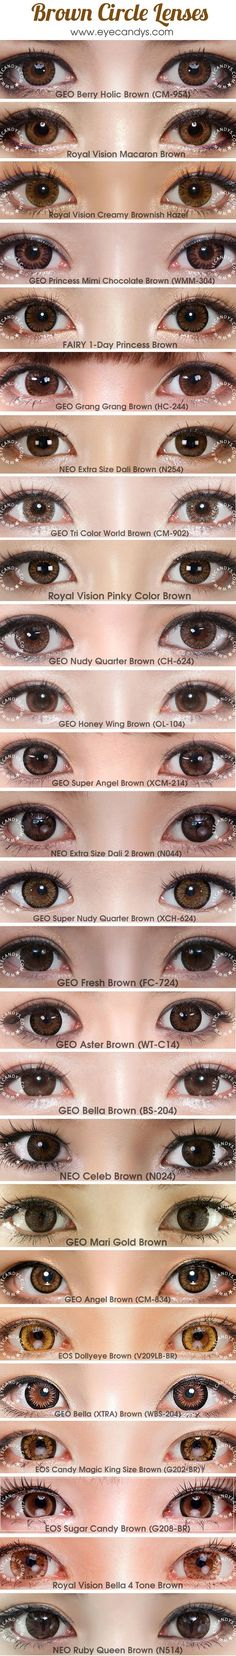 Brown, honey, hazel, chocolate circle lenses (colored contact lens). Authentic Korean circle lenses, circle lens, colored contacts, color contact lens, big eyes, cosmetic contact lenses. Buy authentic GEO lens with free Shipping to USA, Canada & worldwide! http://www.eyecandys.com/brown/: